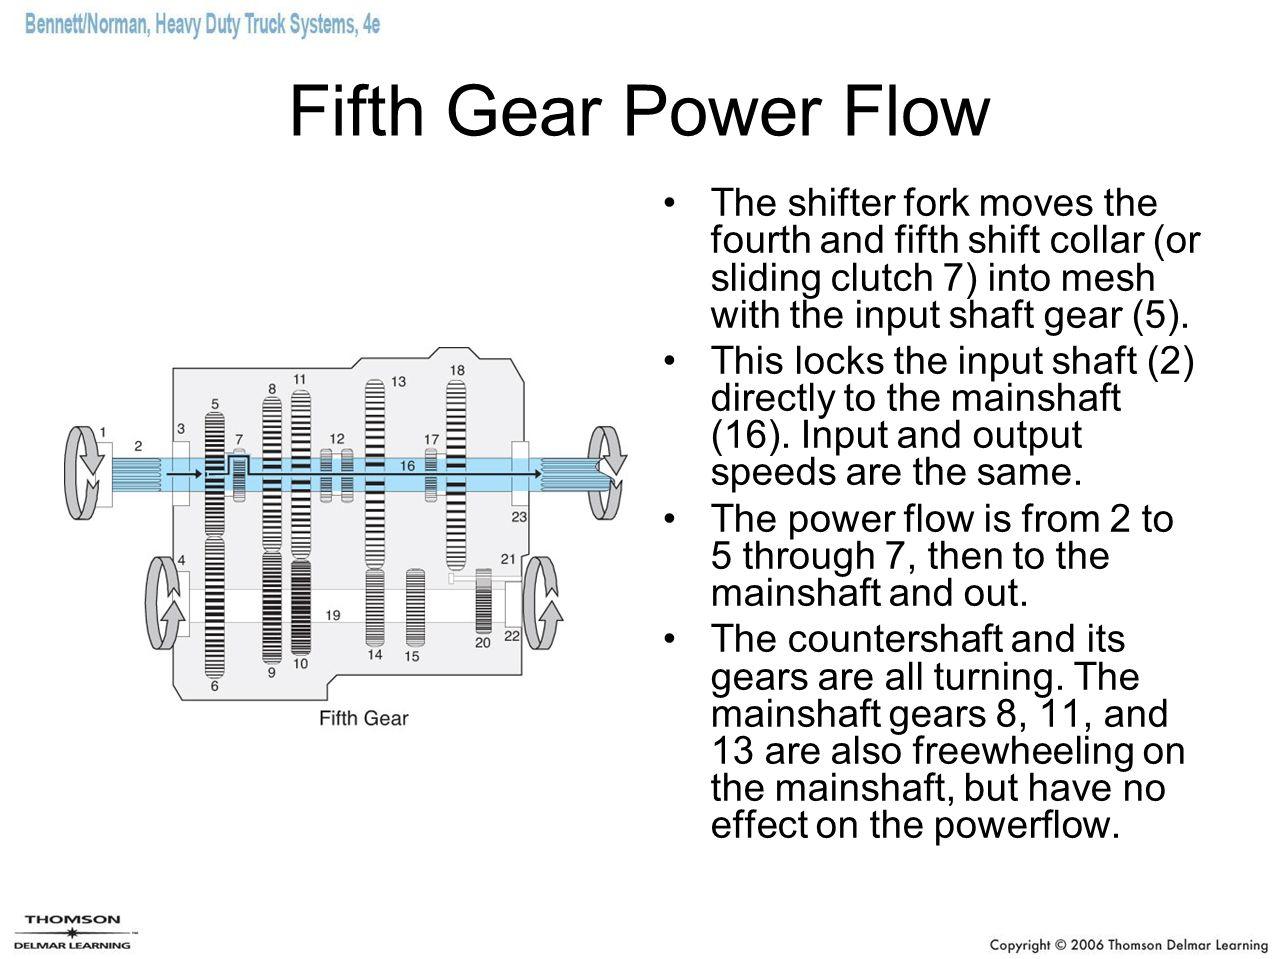 Fifth Gear Power Flow The shifter fork moves the fourth and fifth shift collar (or sliding clutch 7) into mesh with the input shaft gear (5). This loc